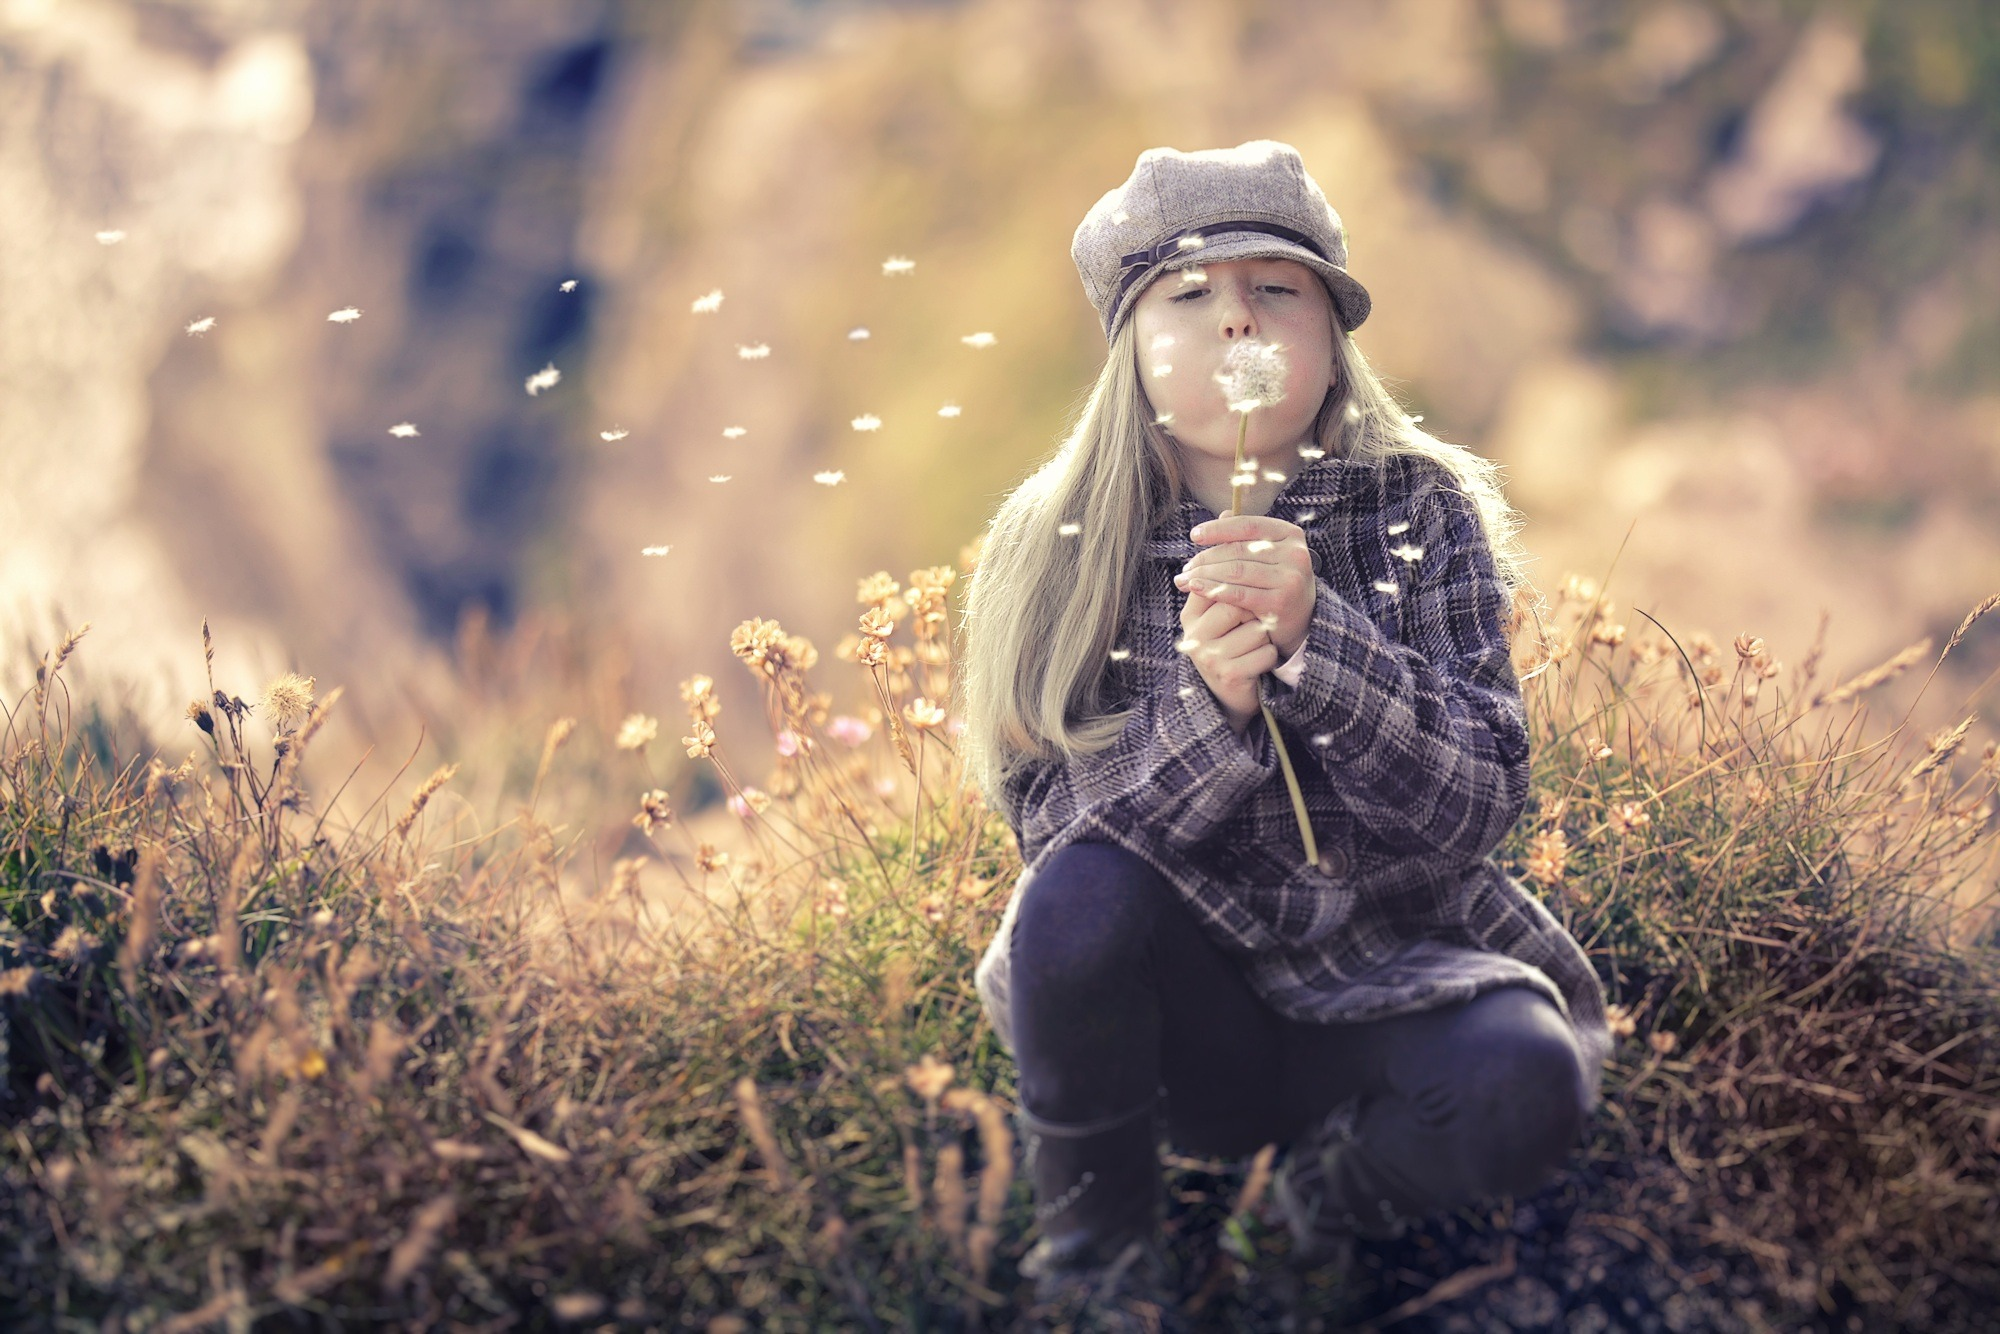 nature-forest-grass-person-people-woman-770189-pxhere.com